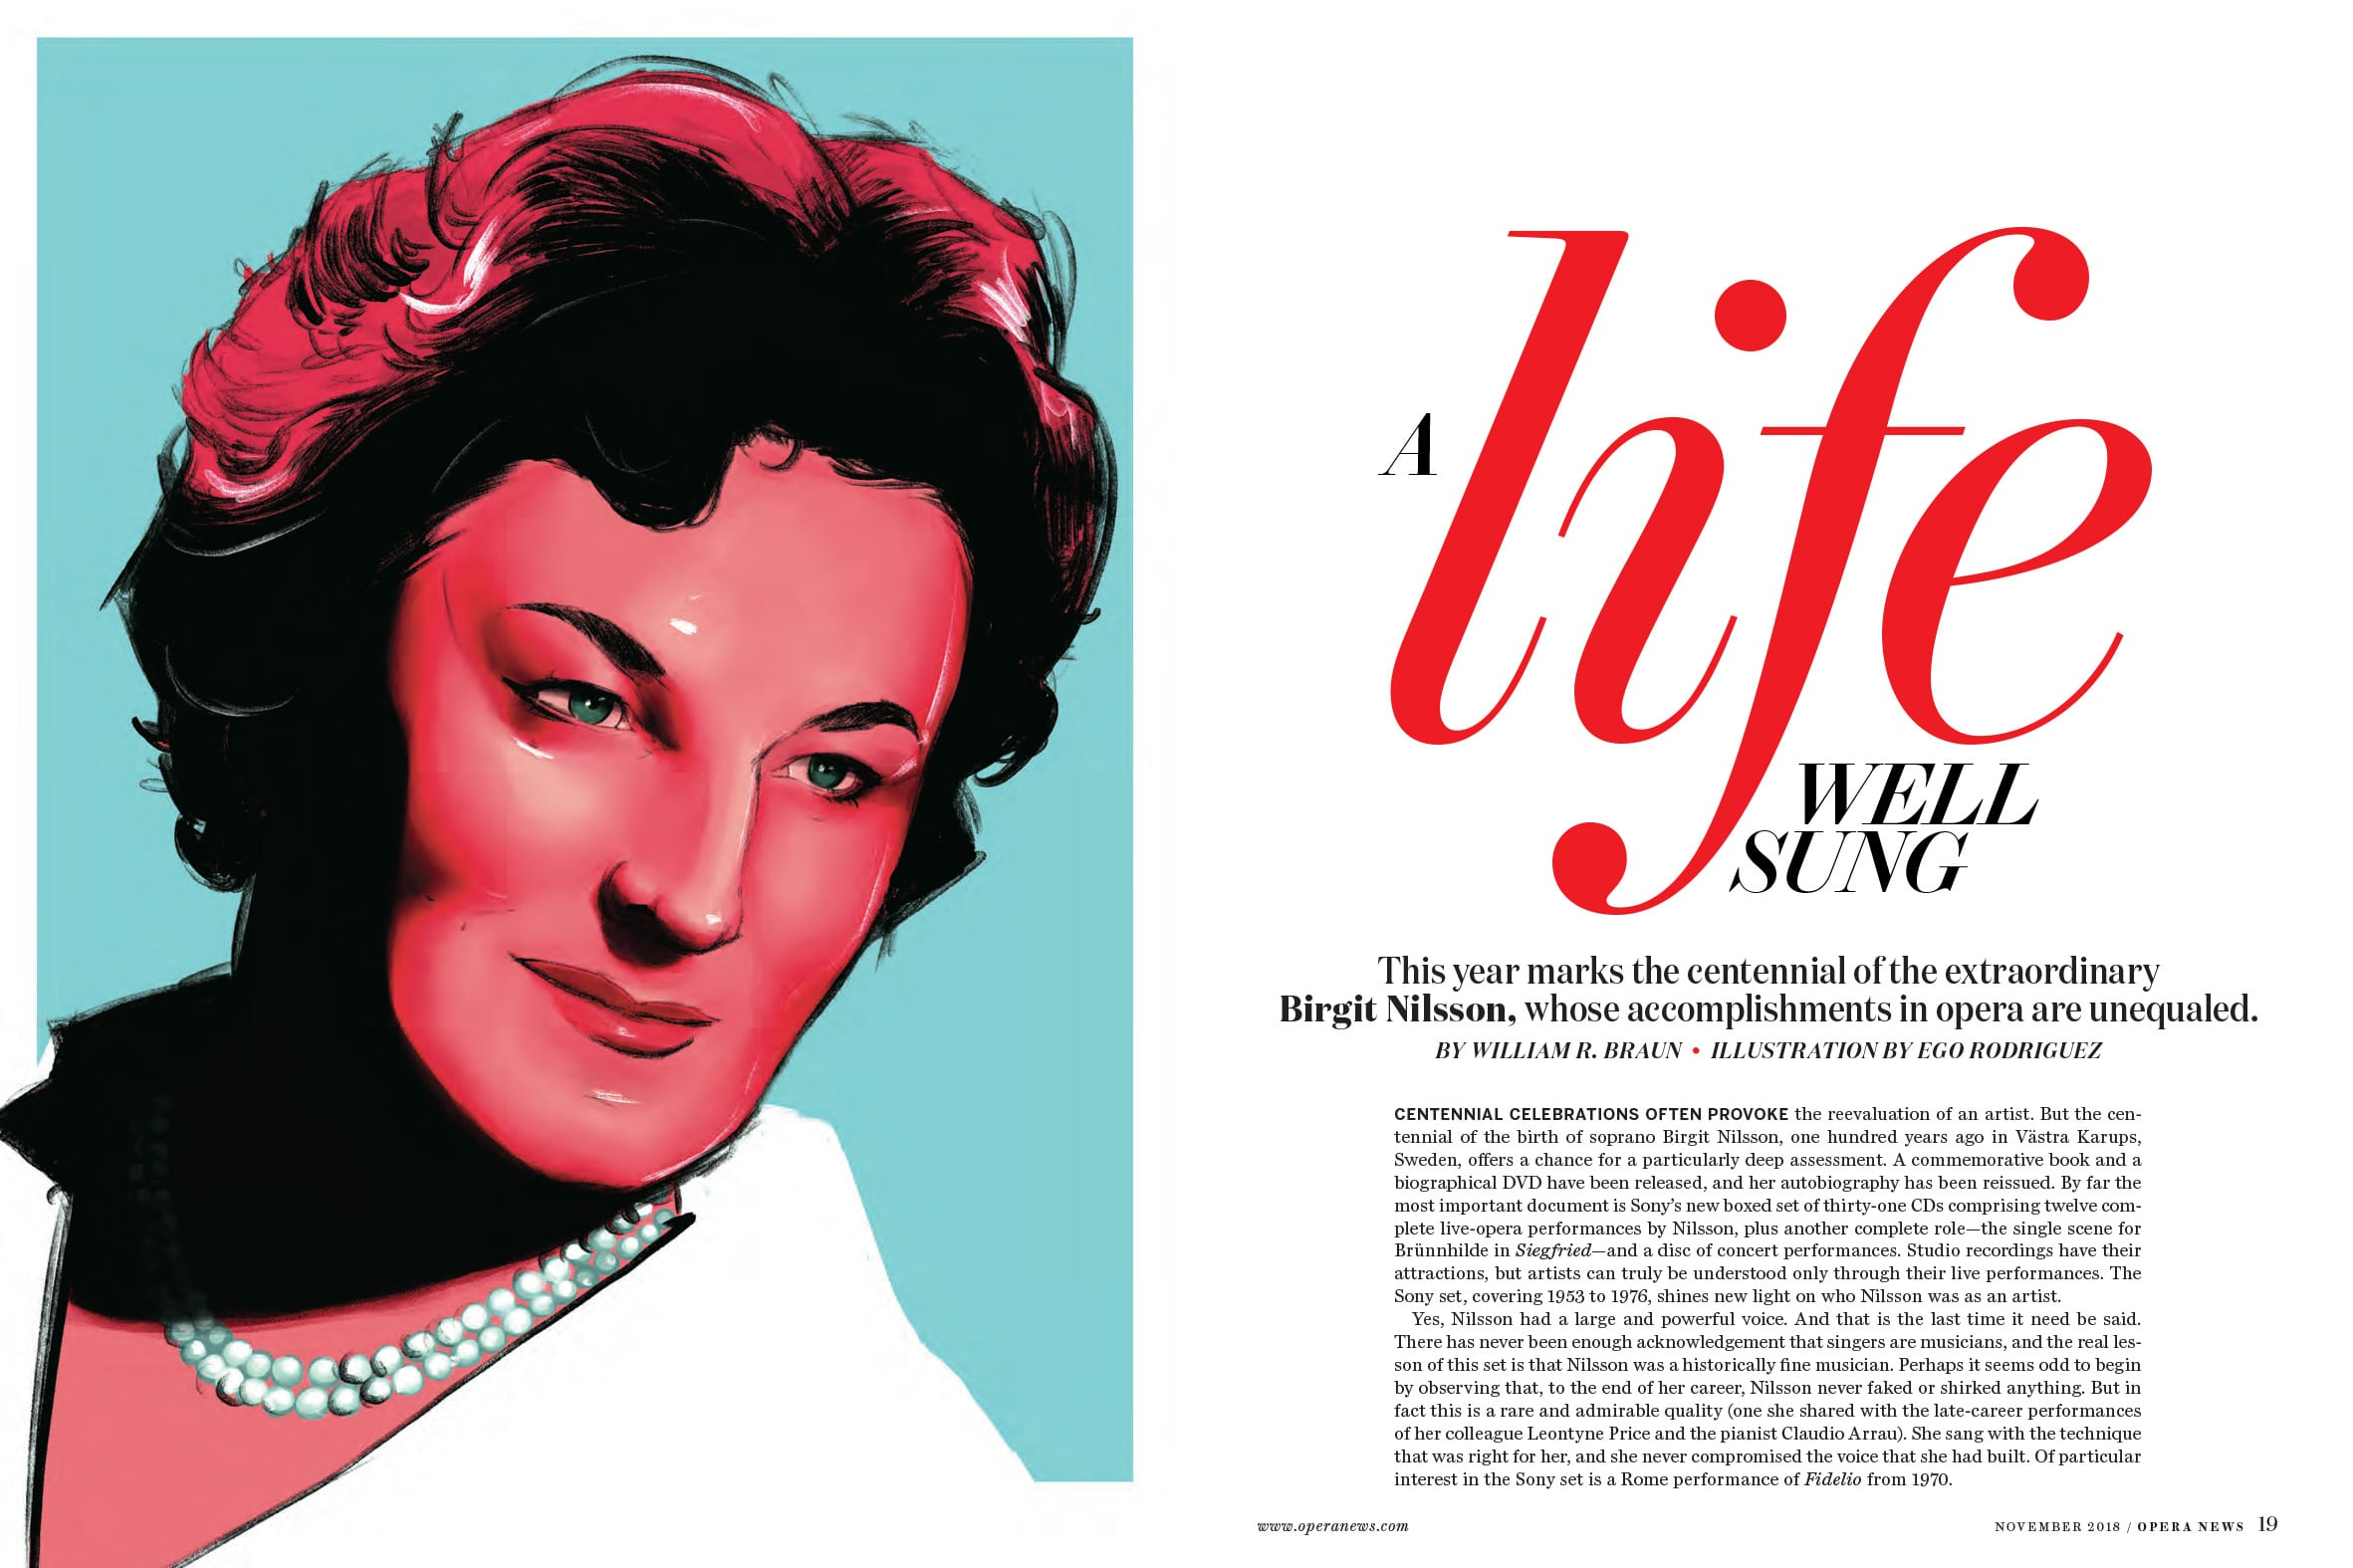 birgit nilsson- opera news - cover and inside feature for diva issue 2018